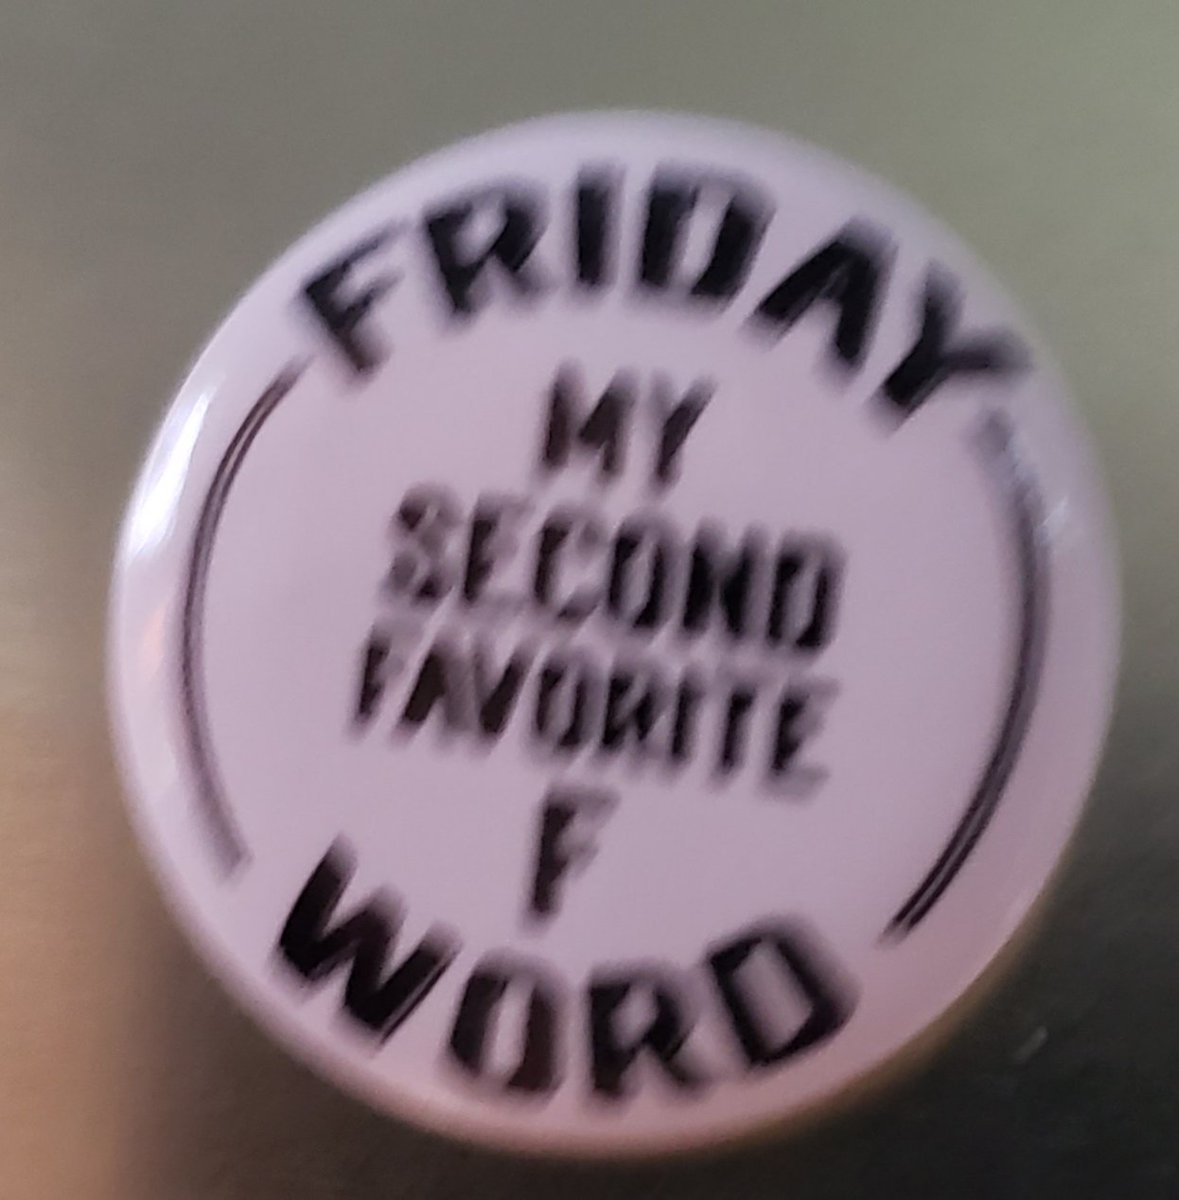 """#HappyFriday y'all! (""""Football"""" is of course my favorite """"f"""" word.) <br>http://pic.twitter.com/4Rde06089d"""